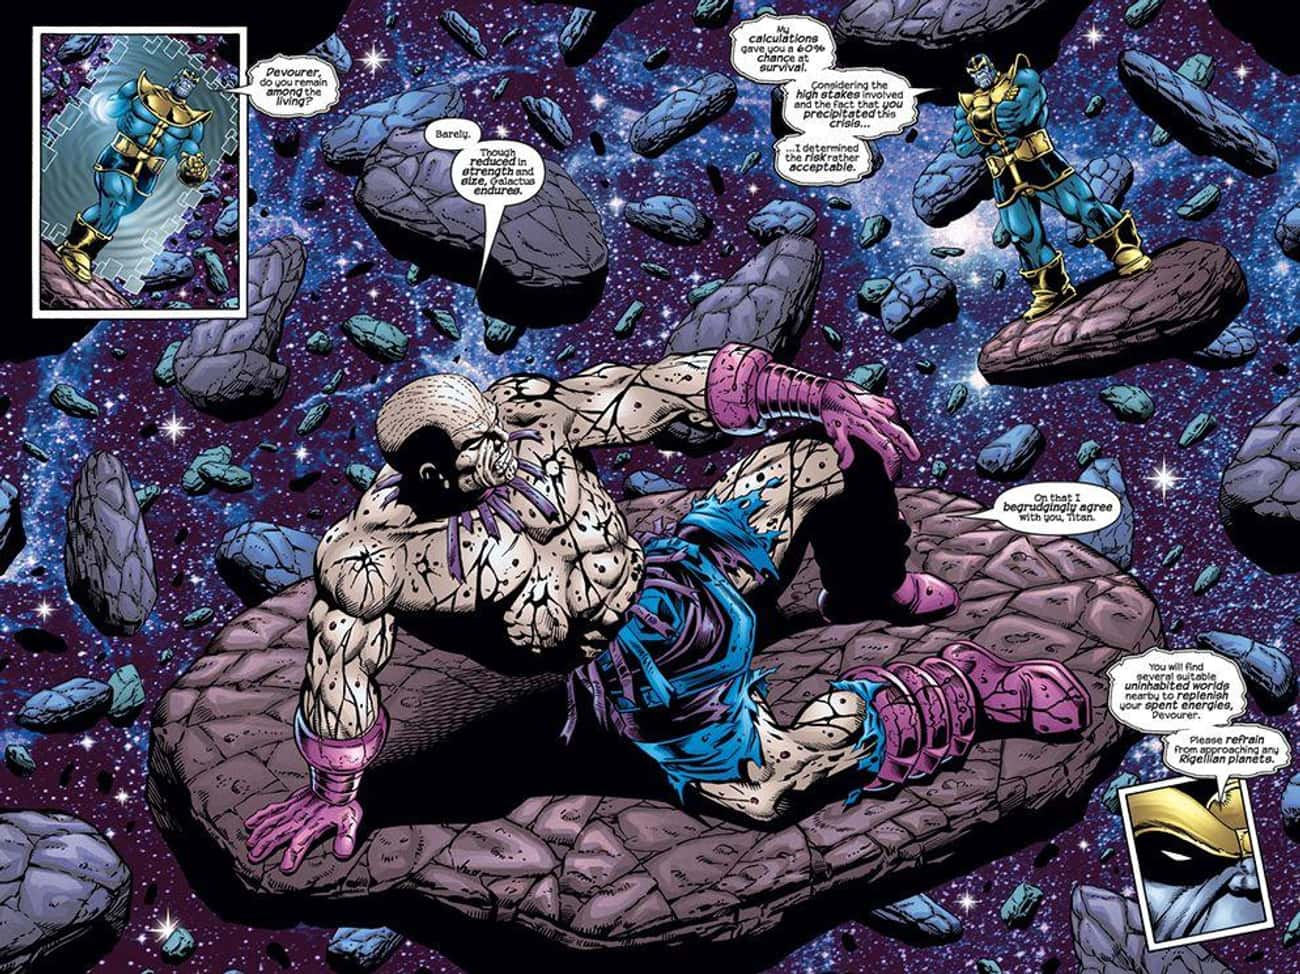 Thanos Crushed Galactus Between Colliding Worlds